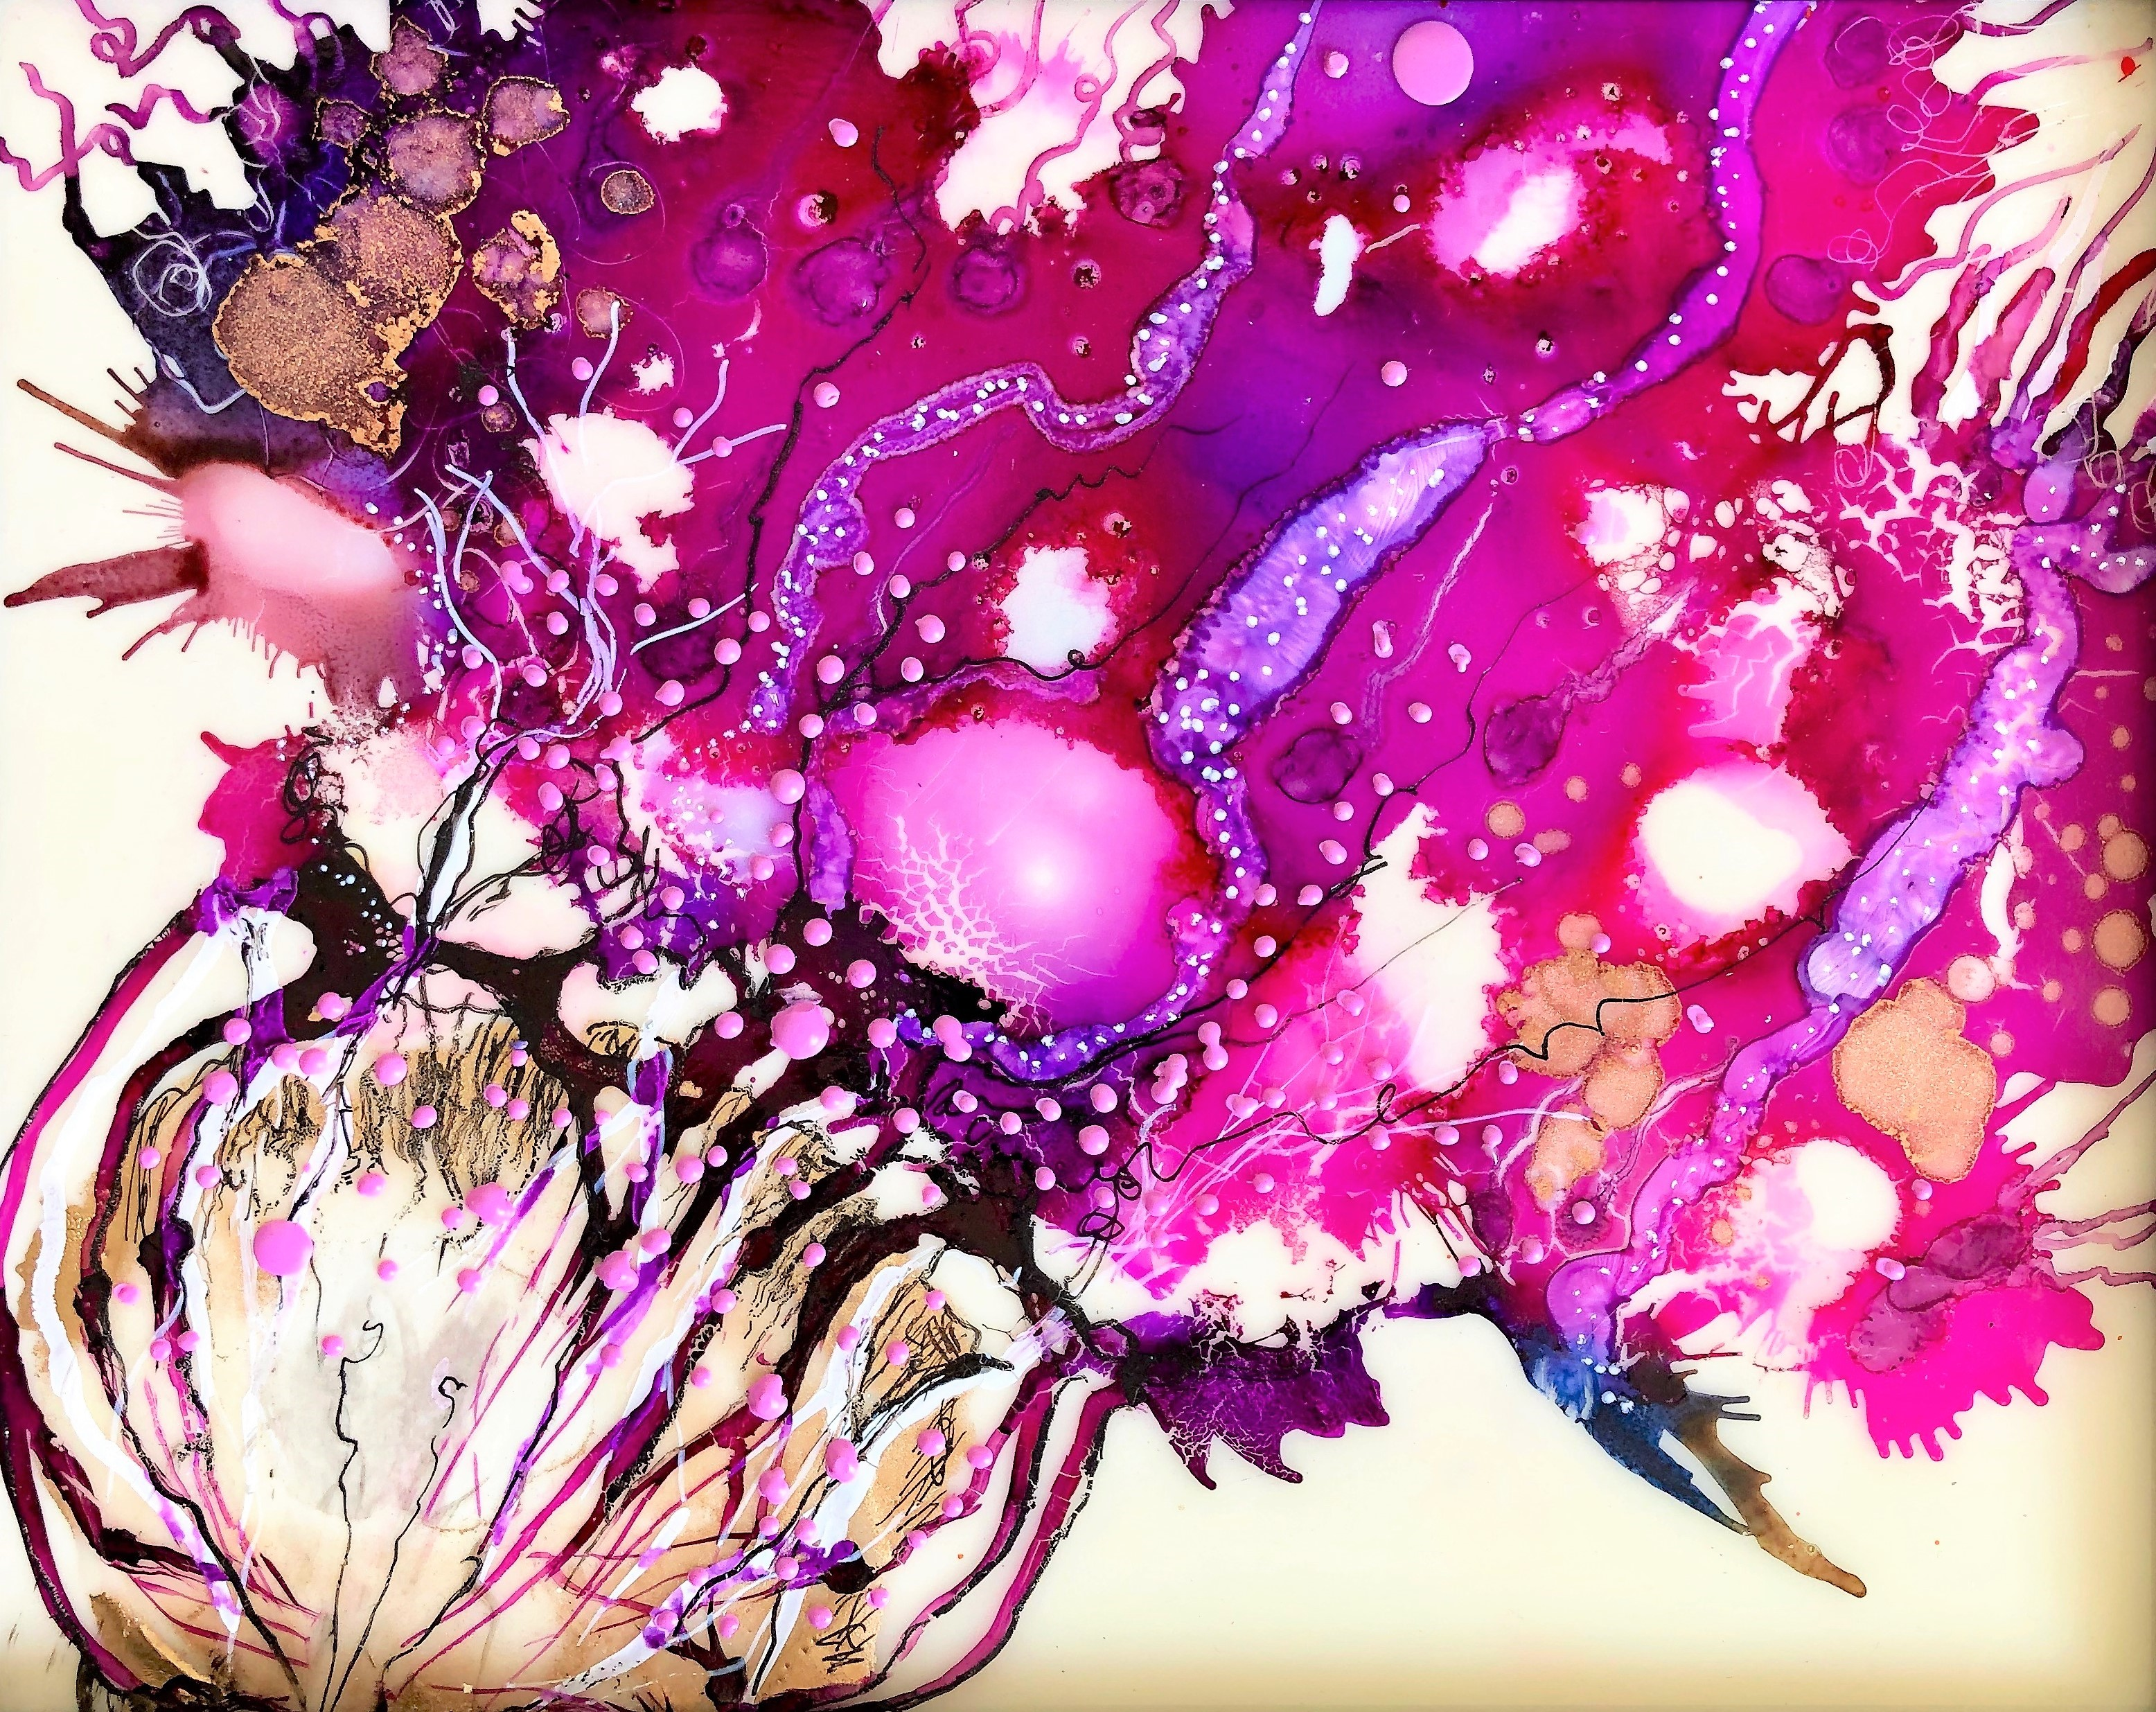 Bursting Forth - Fluid Mixed Media Exploration image